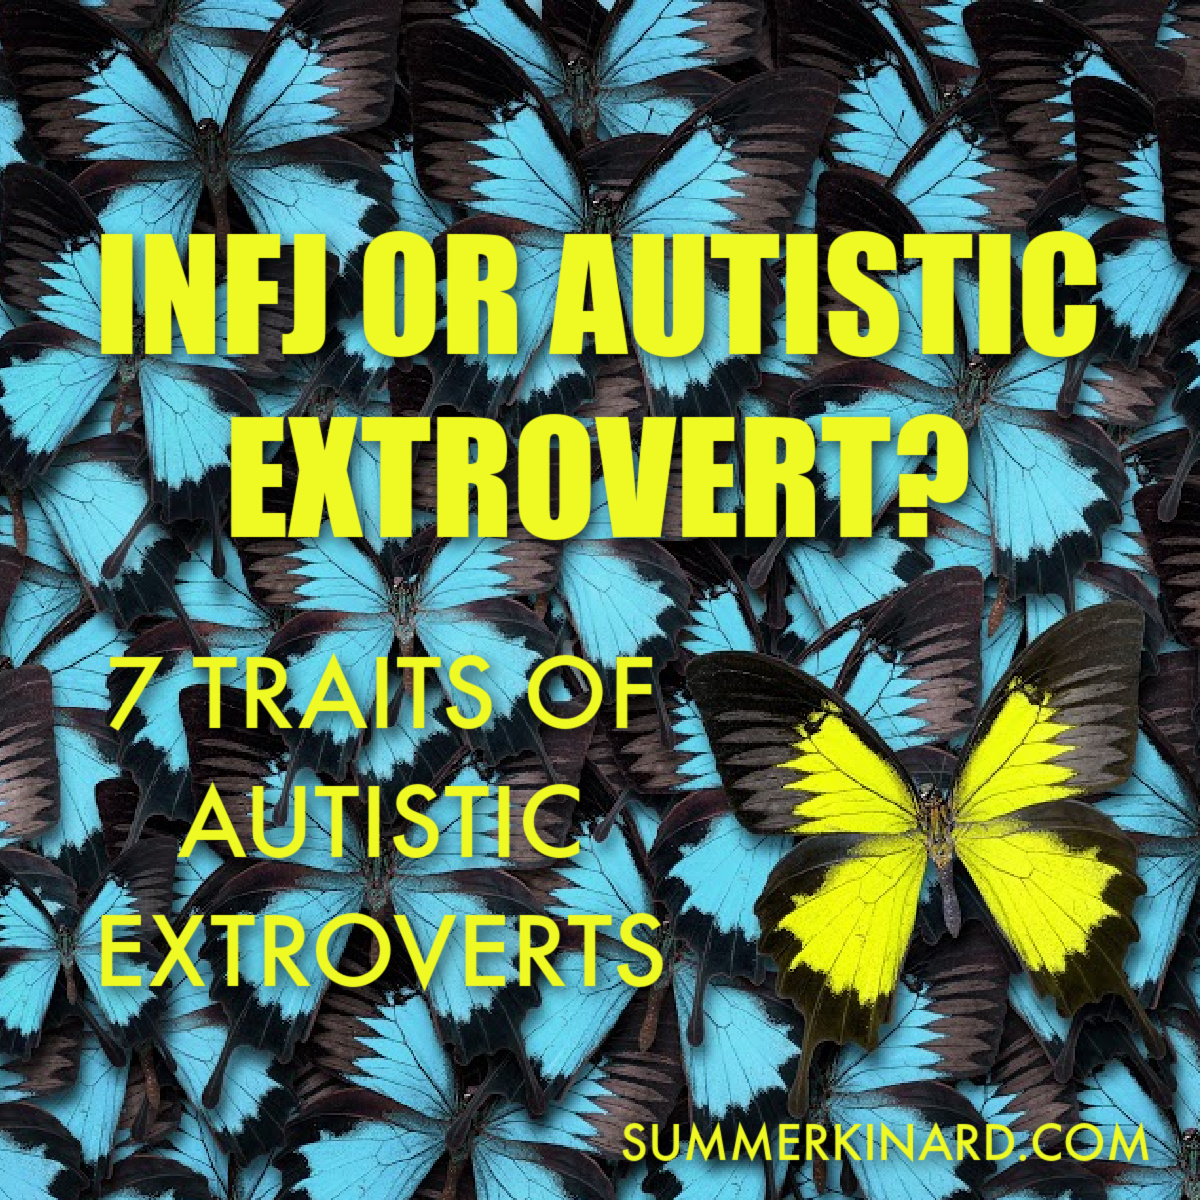 INFJ OR AUTISTIC EXTROVERT? 7 TRAITS OF AUTISTIC EXTROVERTS. BLUE BUTTERFLIES WITH ONE ACID GREEN BUTTERFLY